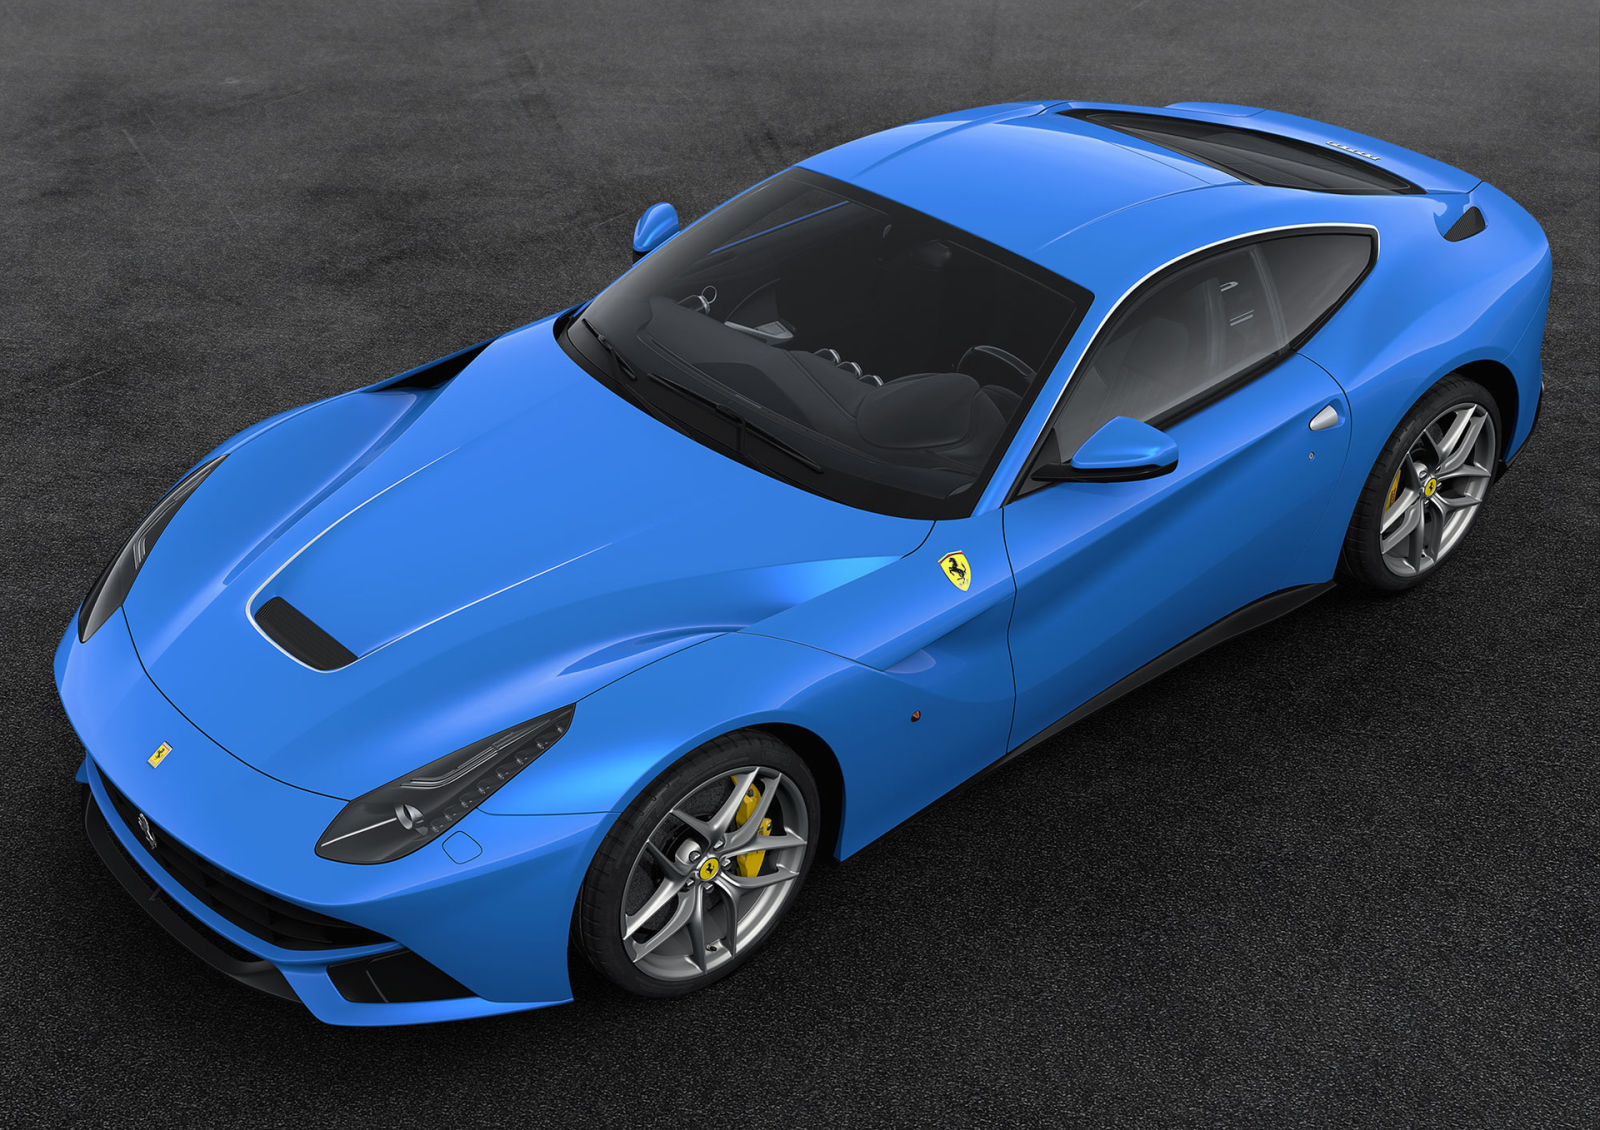 70th anniversary F12 Berlinetta